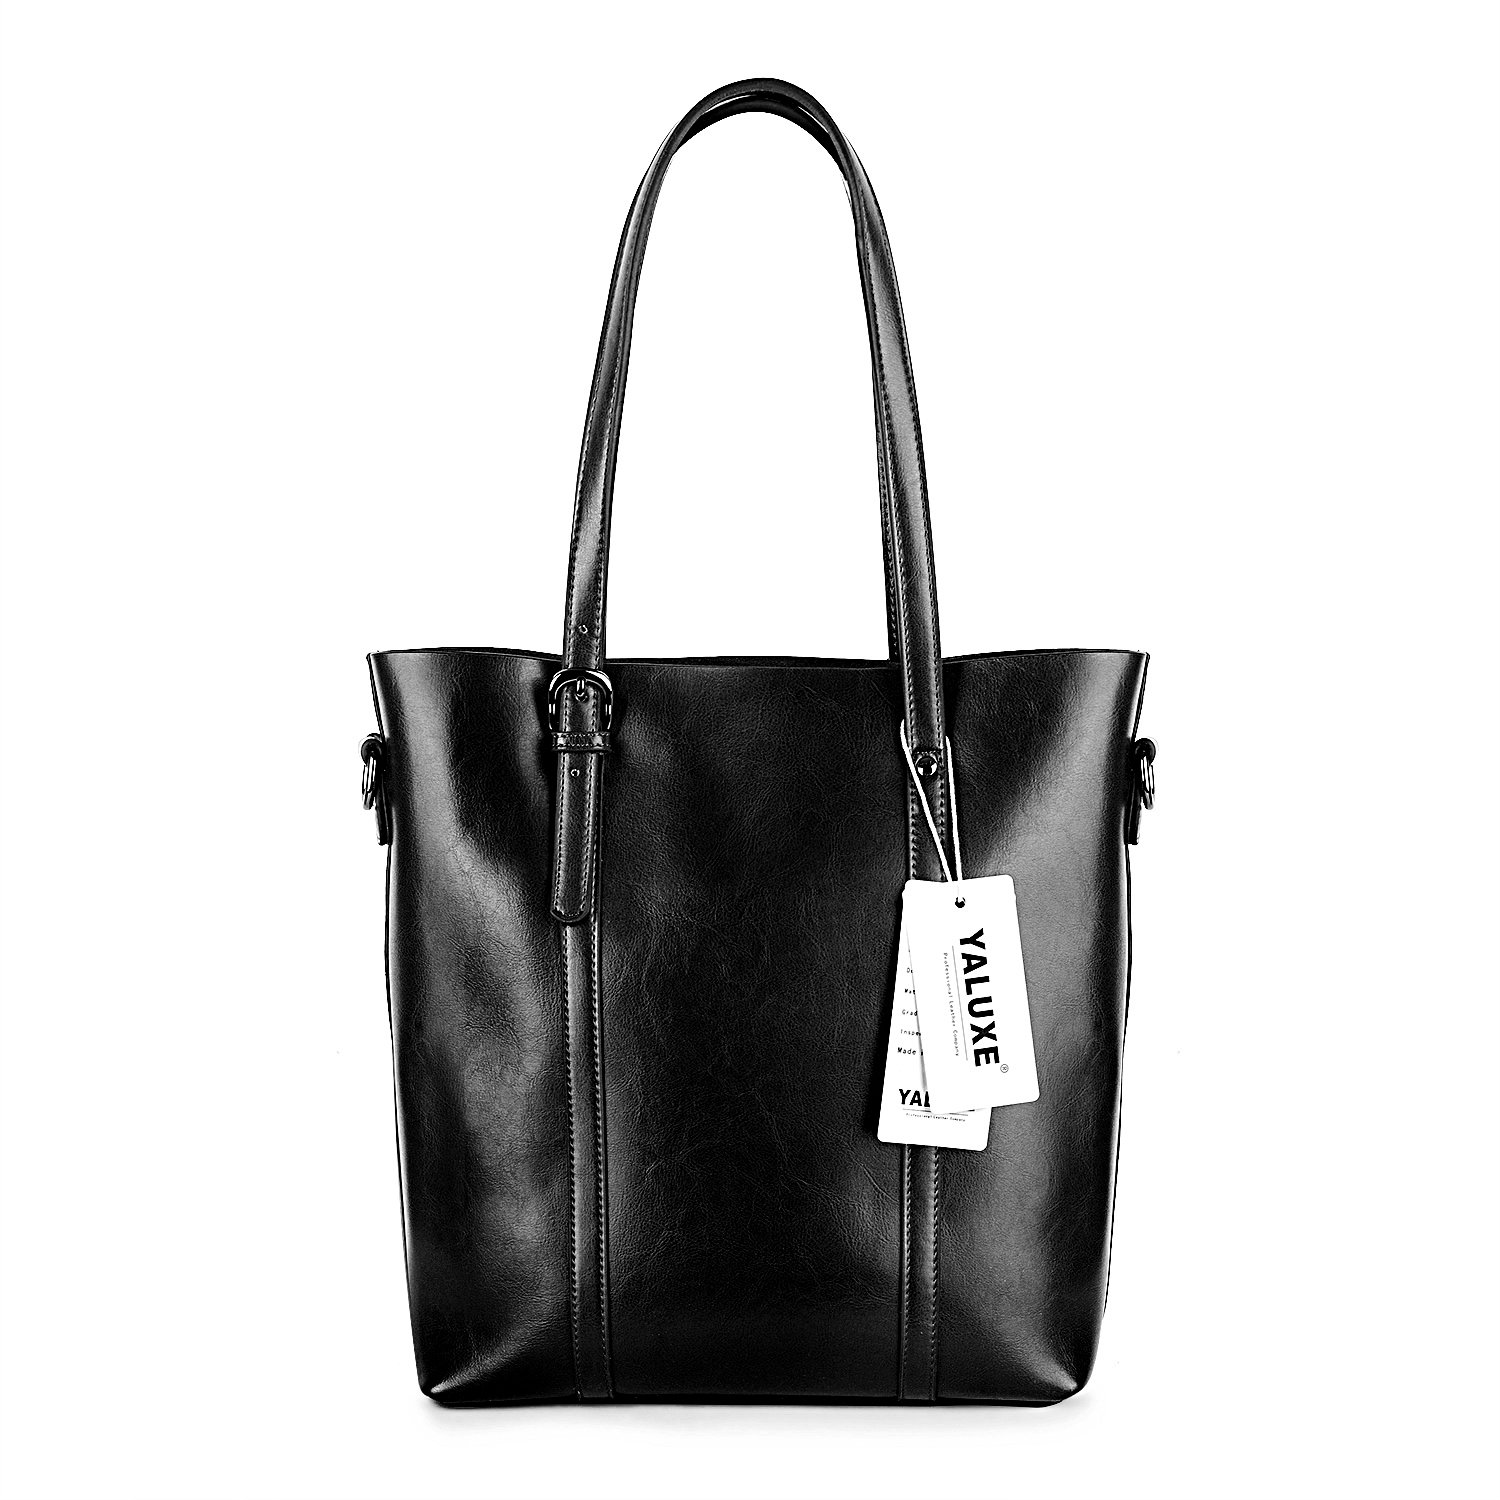 YALUXE Women's Vintage Style Soft Leather Work Tote High Style Shoulder Bag for Women black by YALUXE (Image #3)